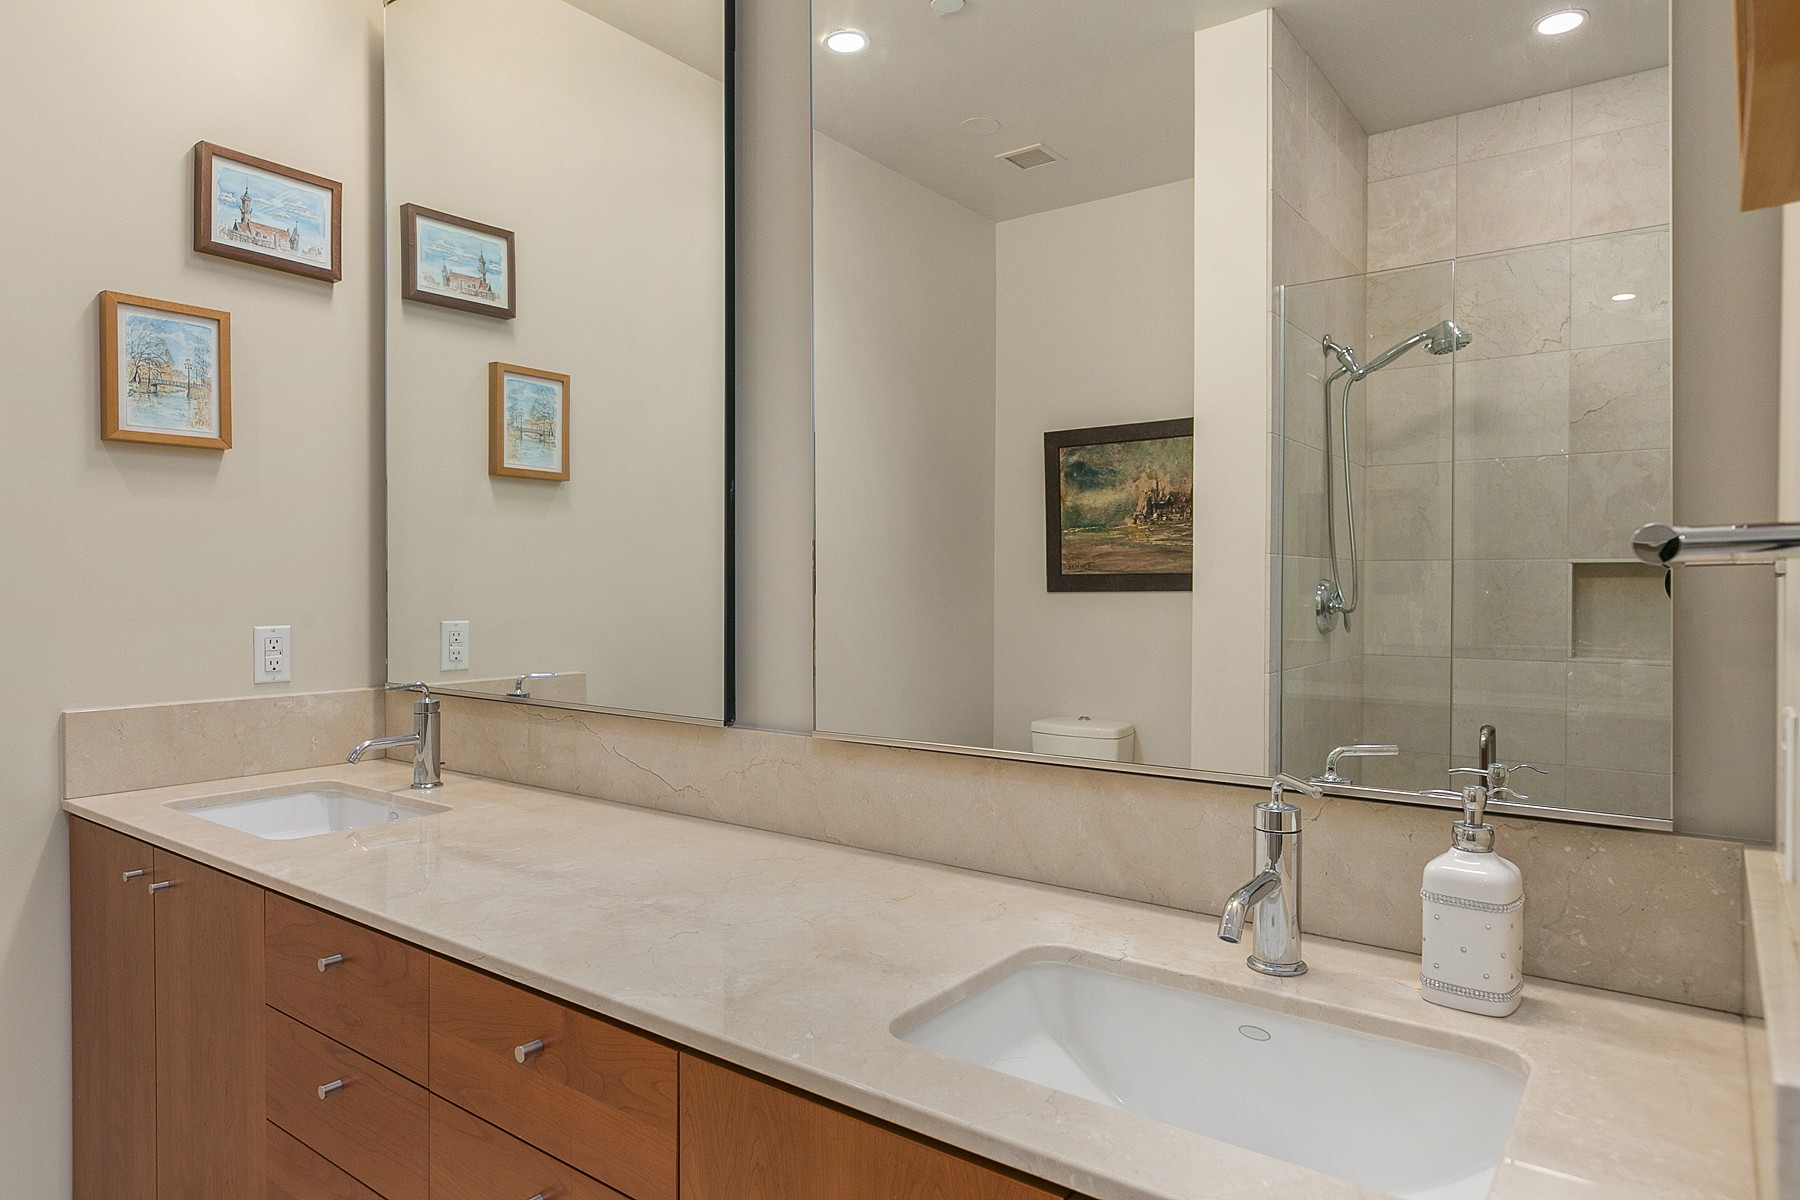 Additional photo for property listing at 909 5th Ave PH2, Seattle 909 5th Ave PH2 Seattle, Washington 98164 United States